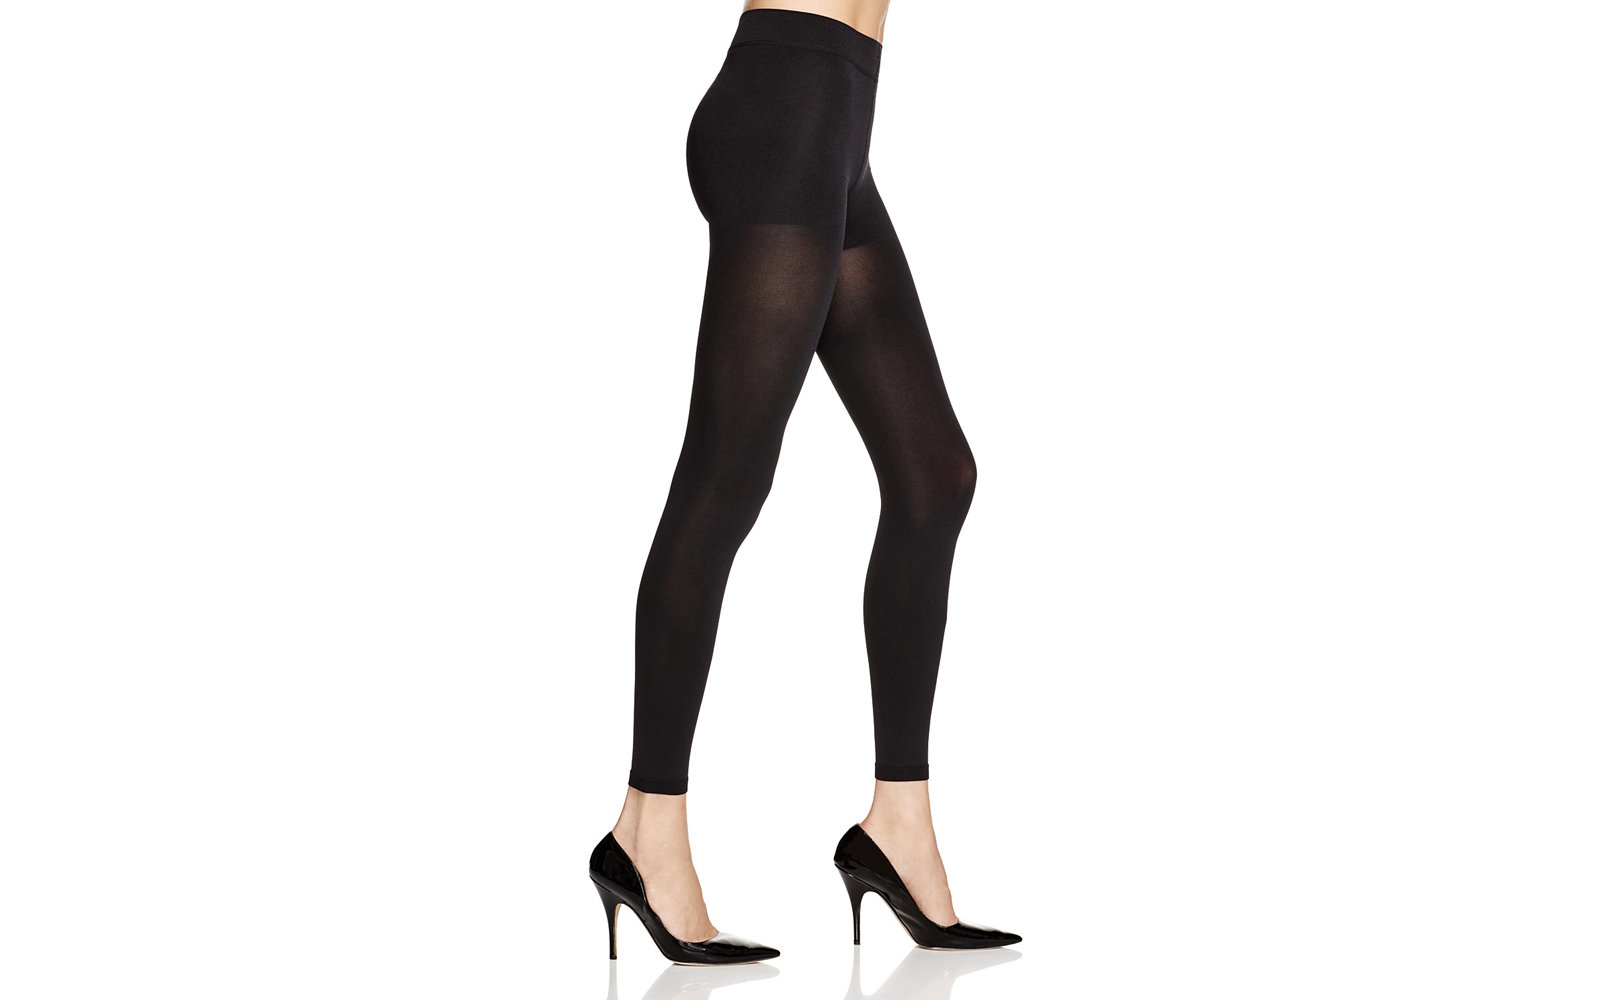 Item M6 Compression Tights